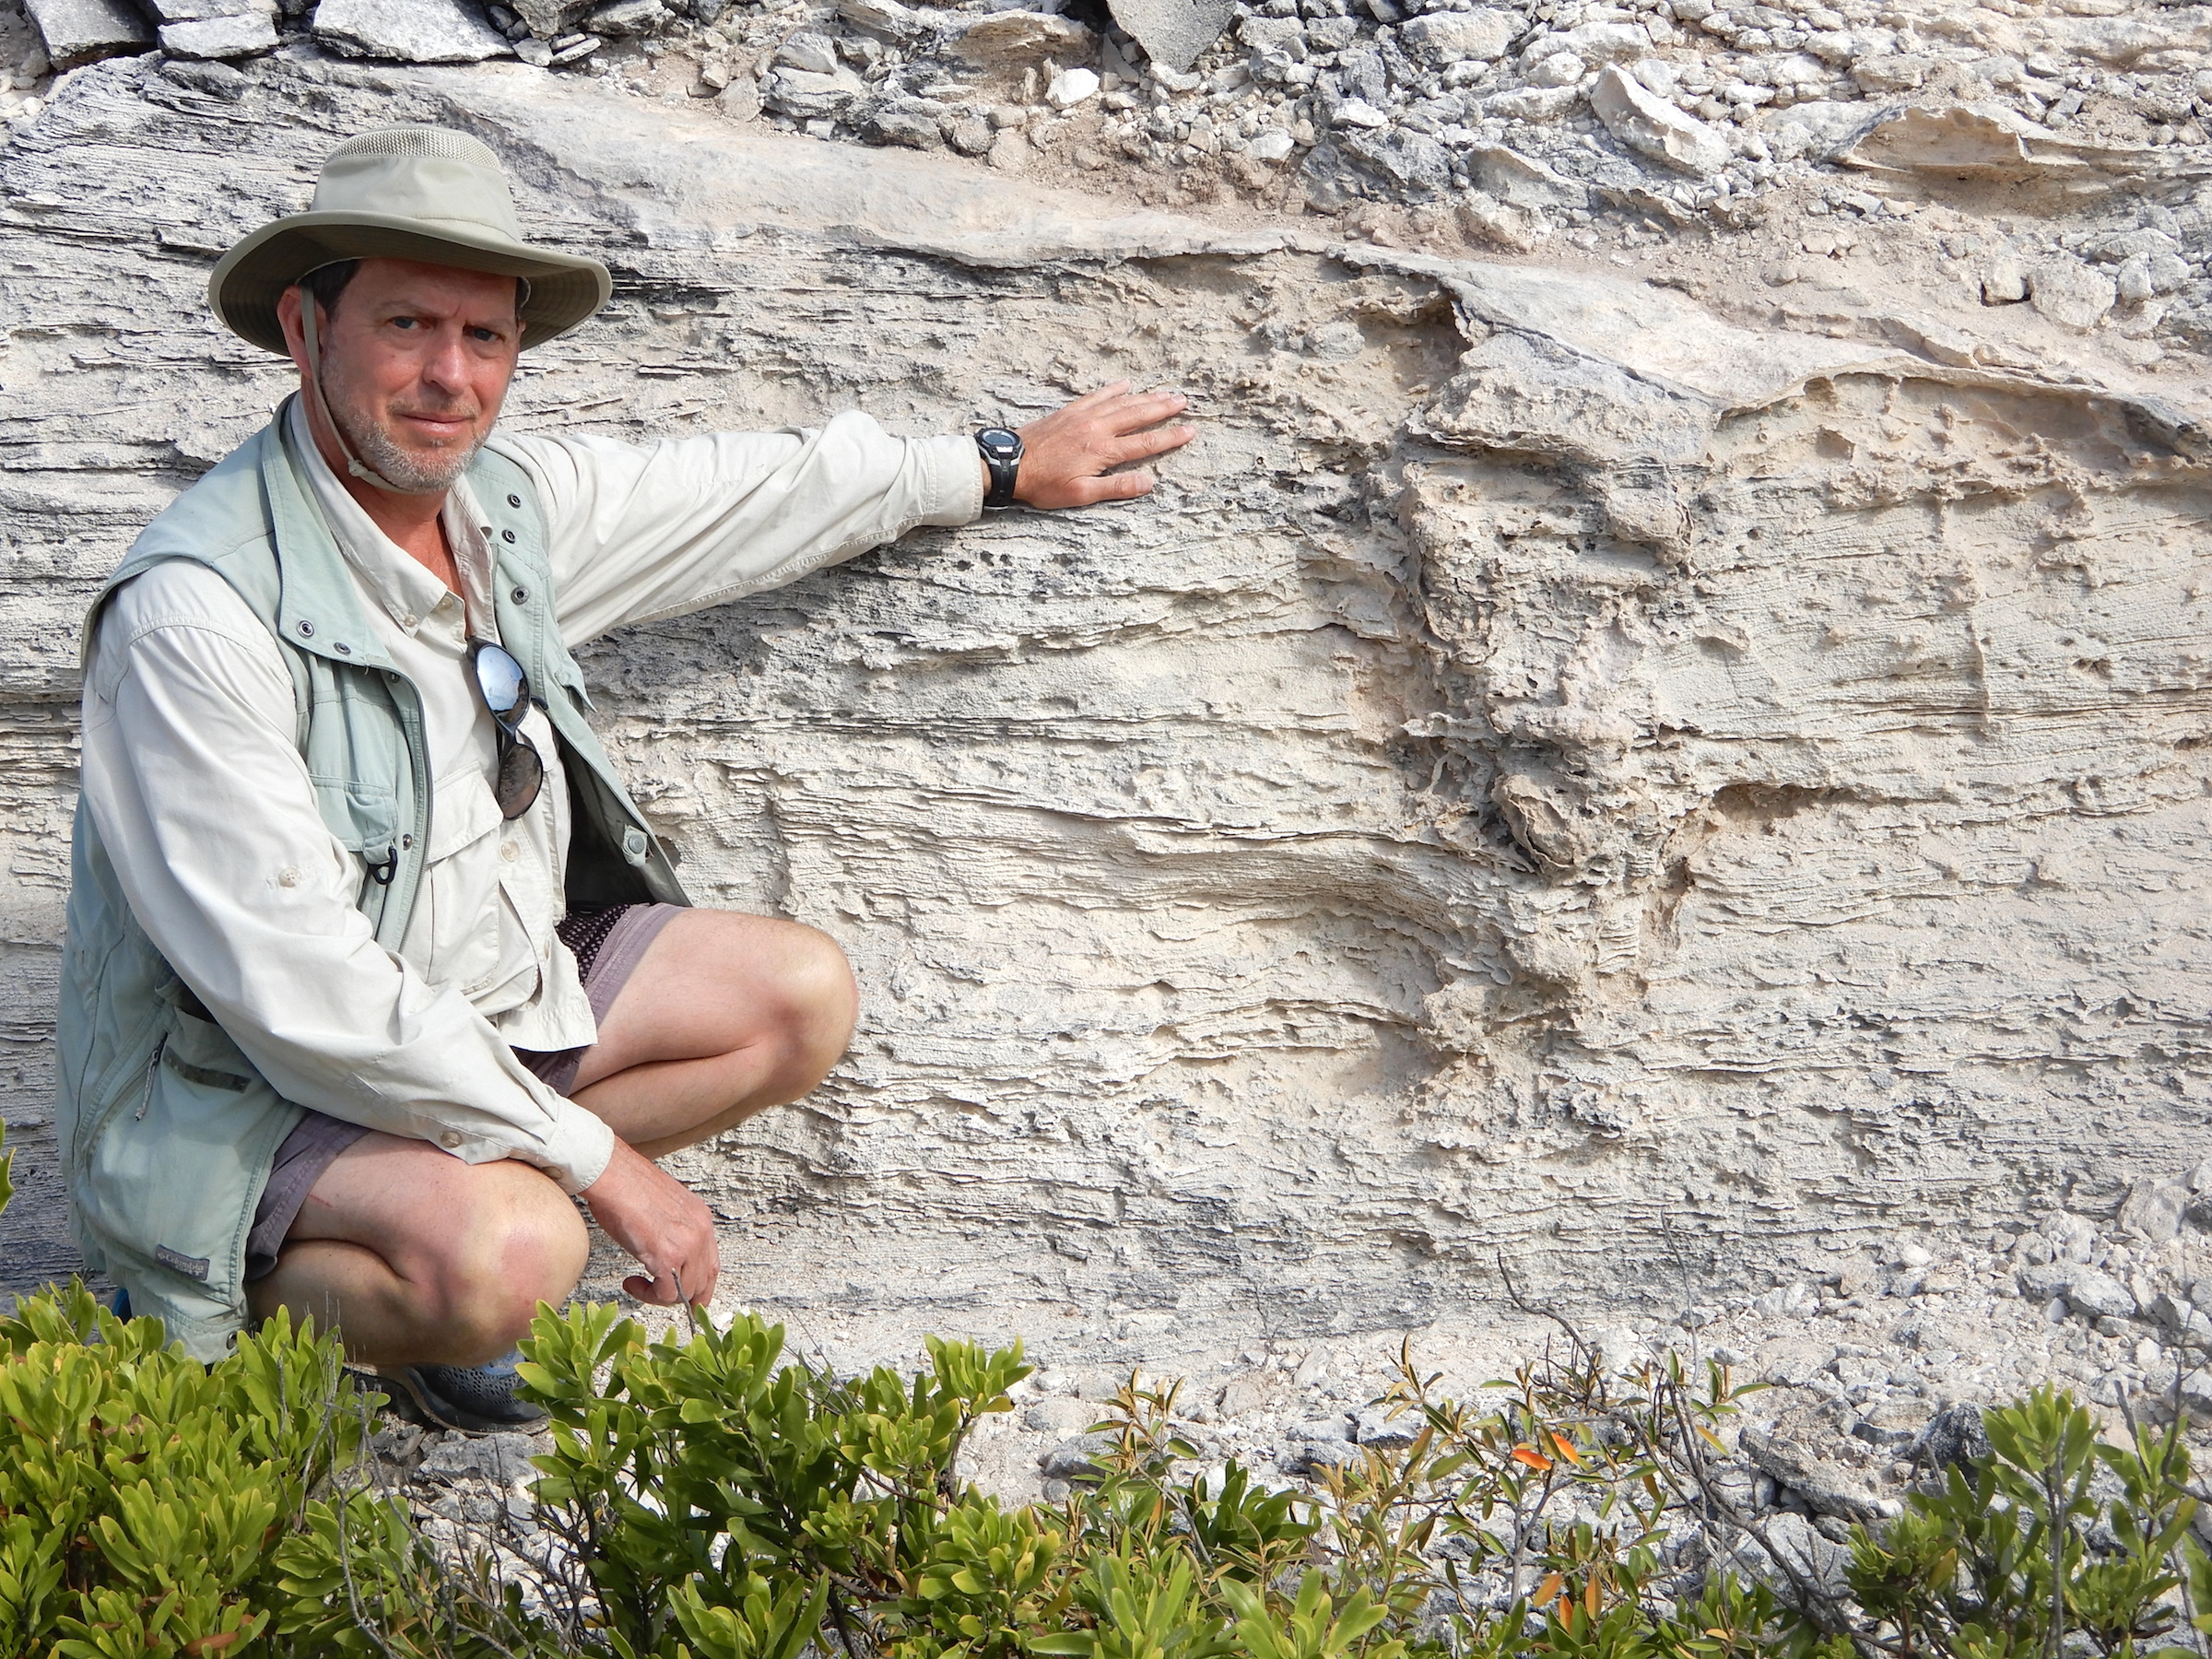 Anthony Martin shows off a section of rock that contains a trace fossil of an iguana burrow.